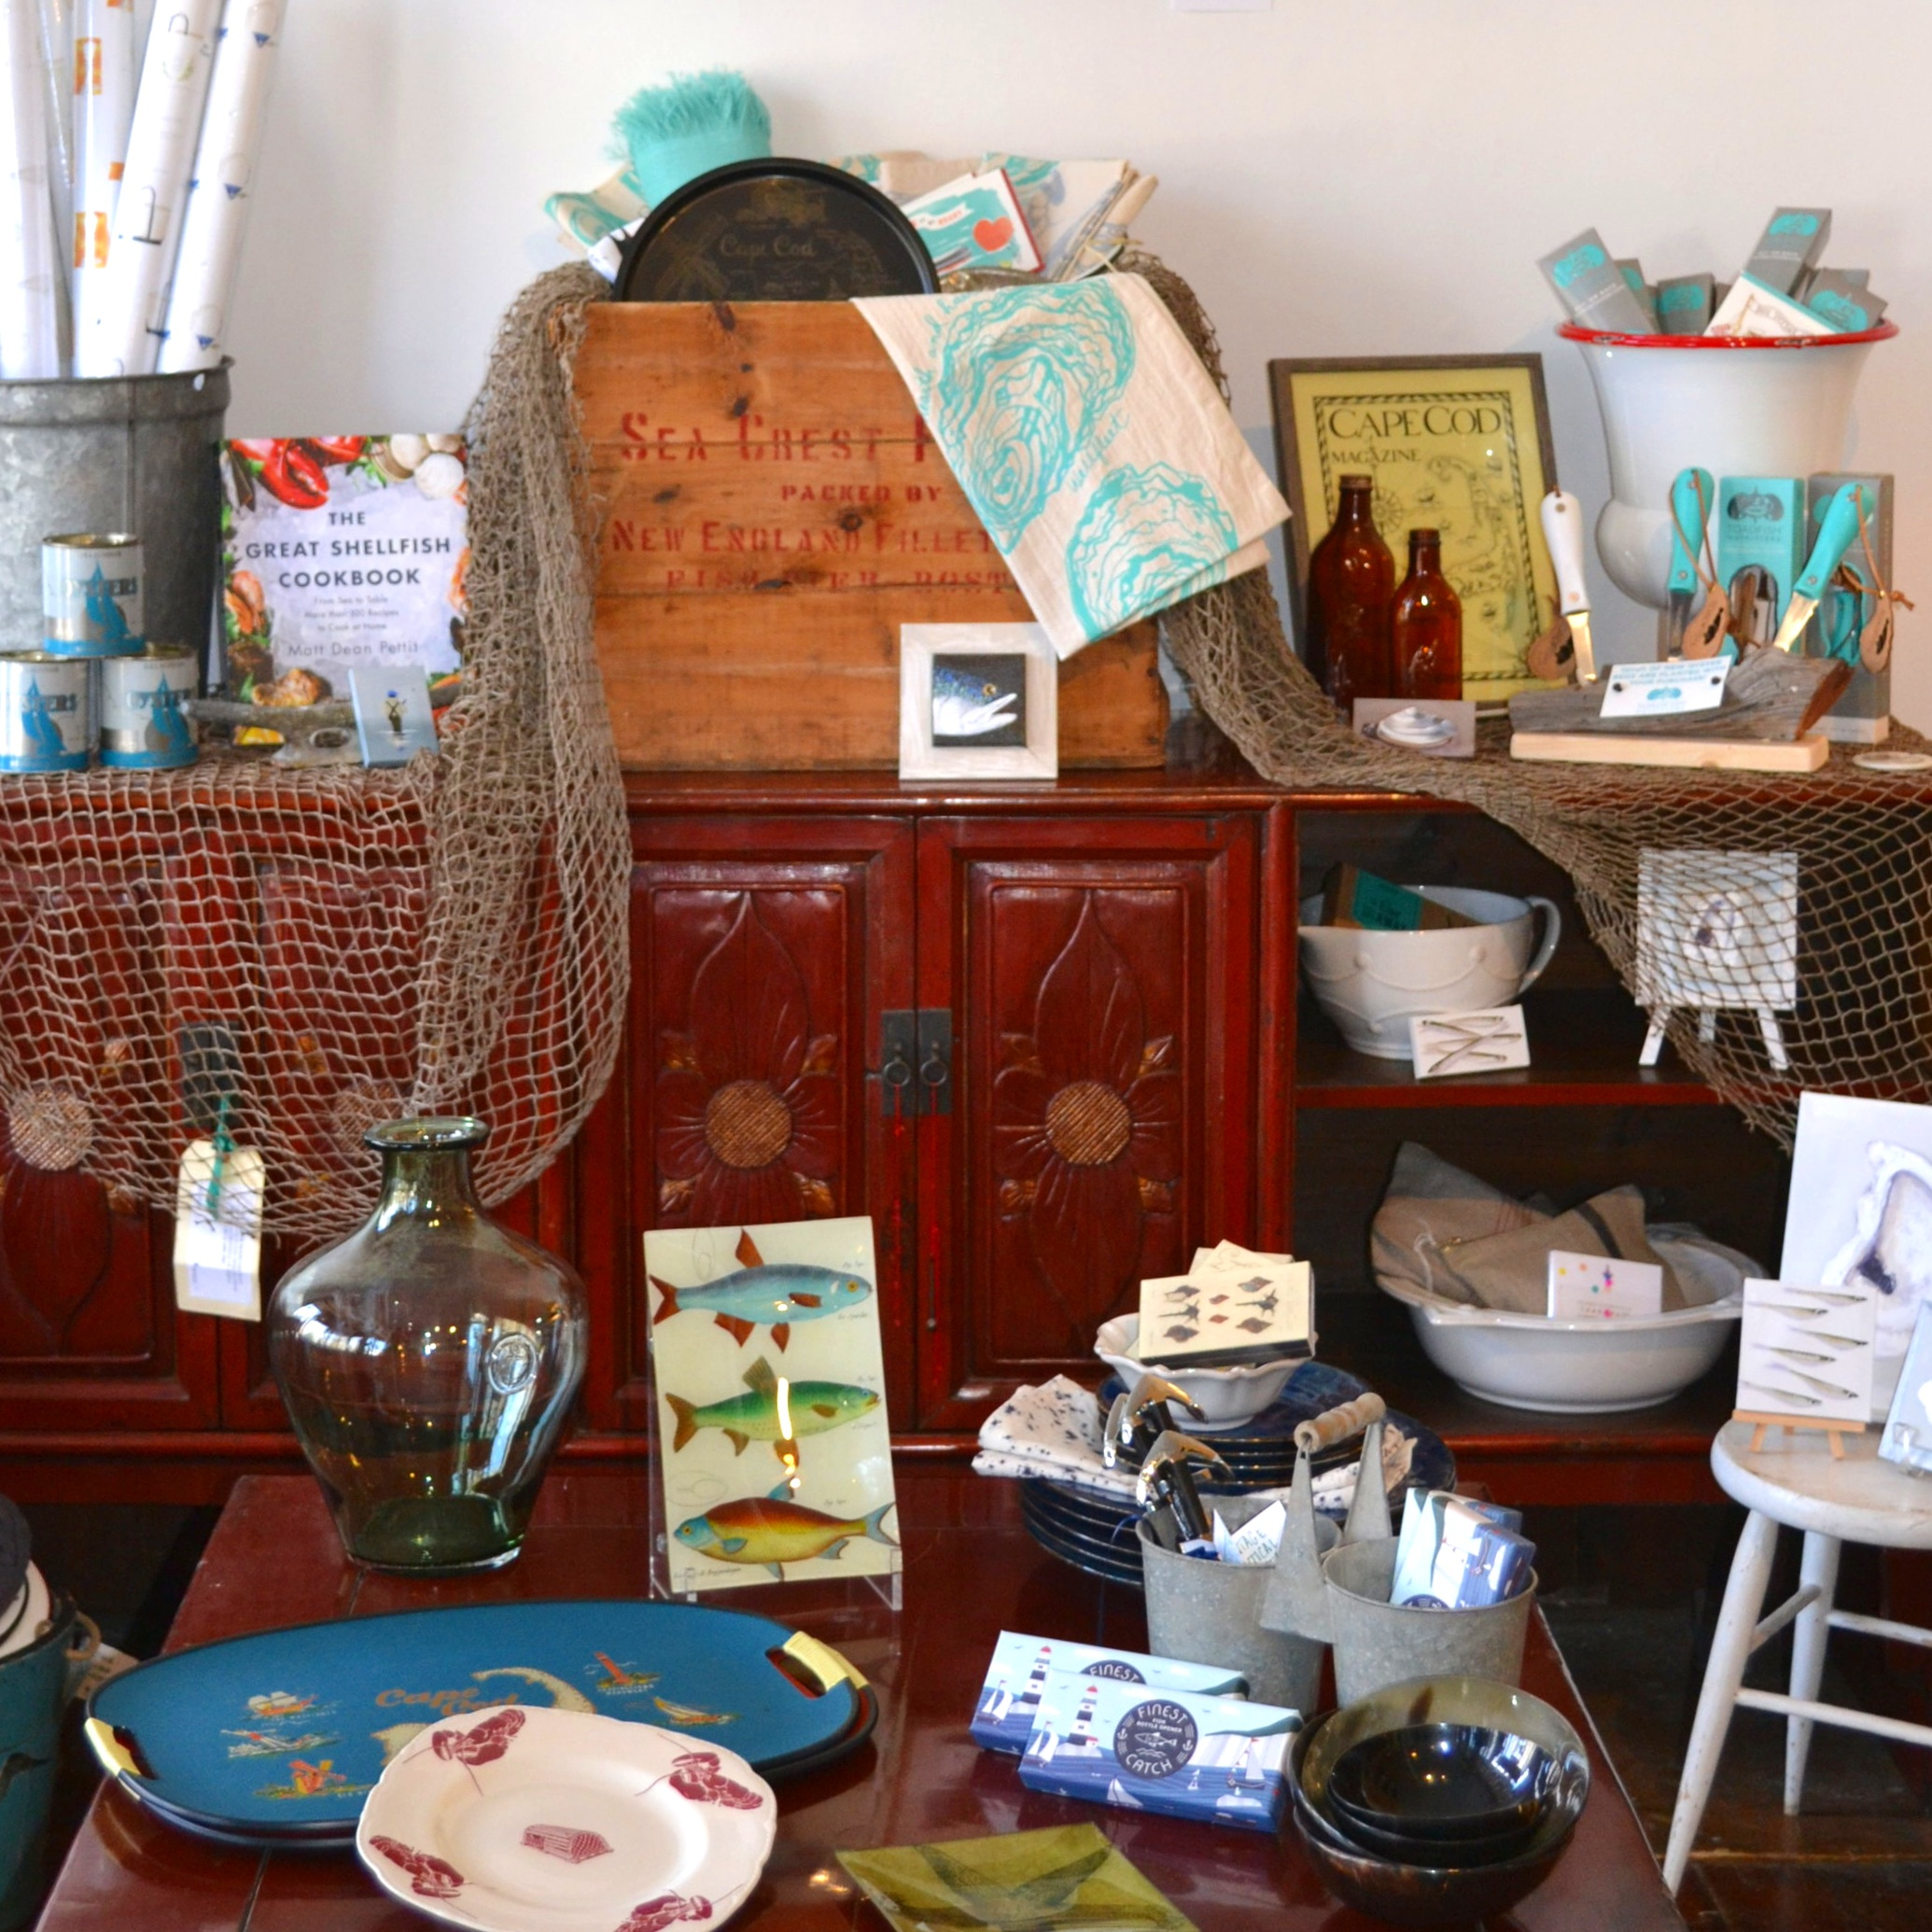 We have a variety of sea-themed items for the fisherman in your life